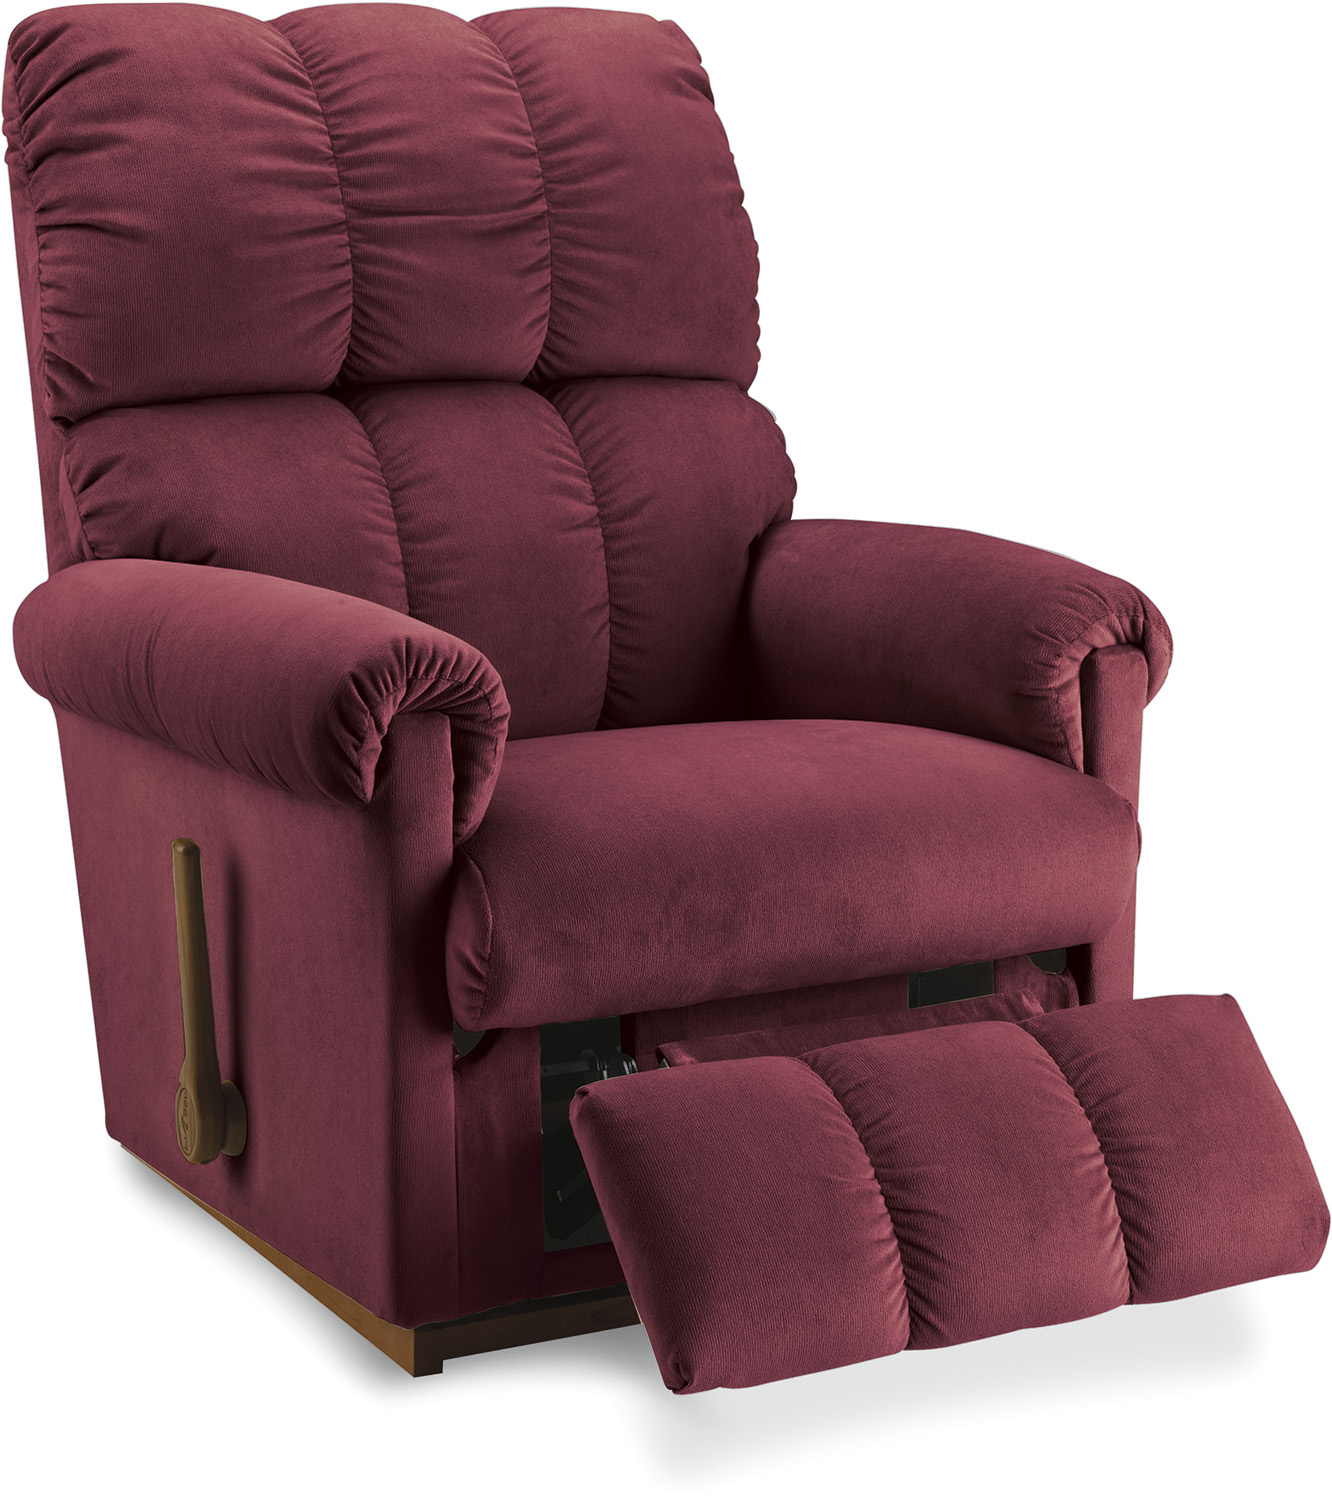 Vail Recliner by La-Z-Boy